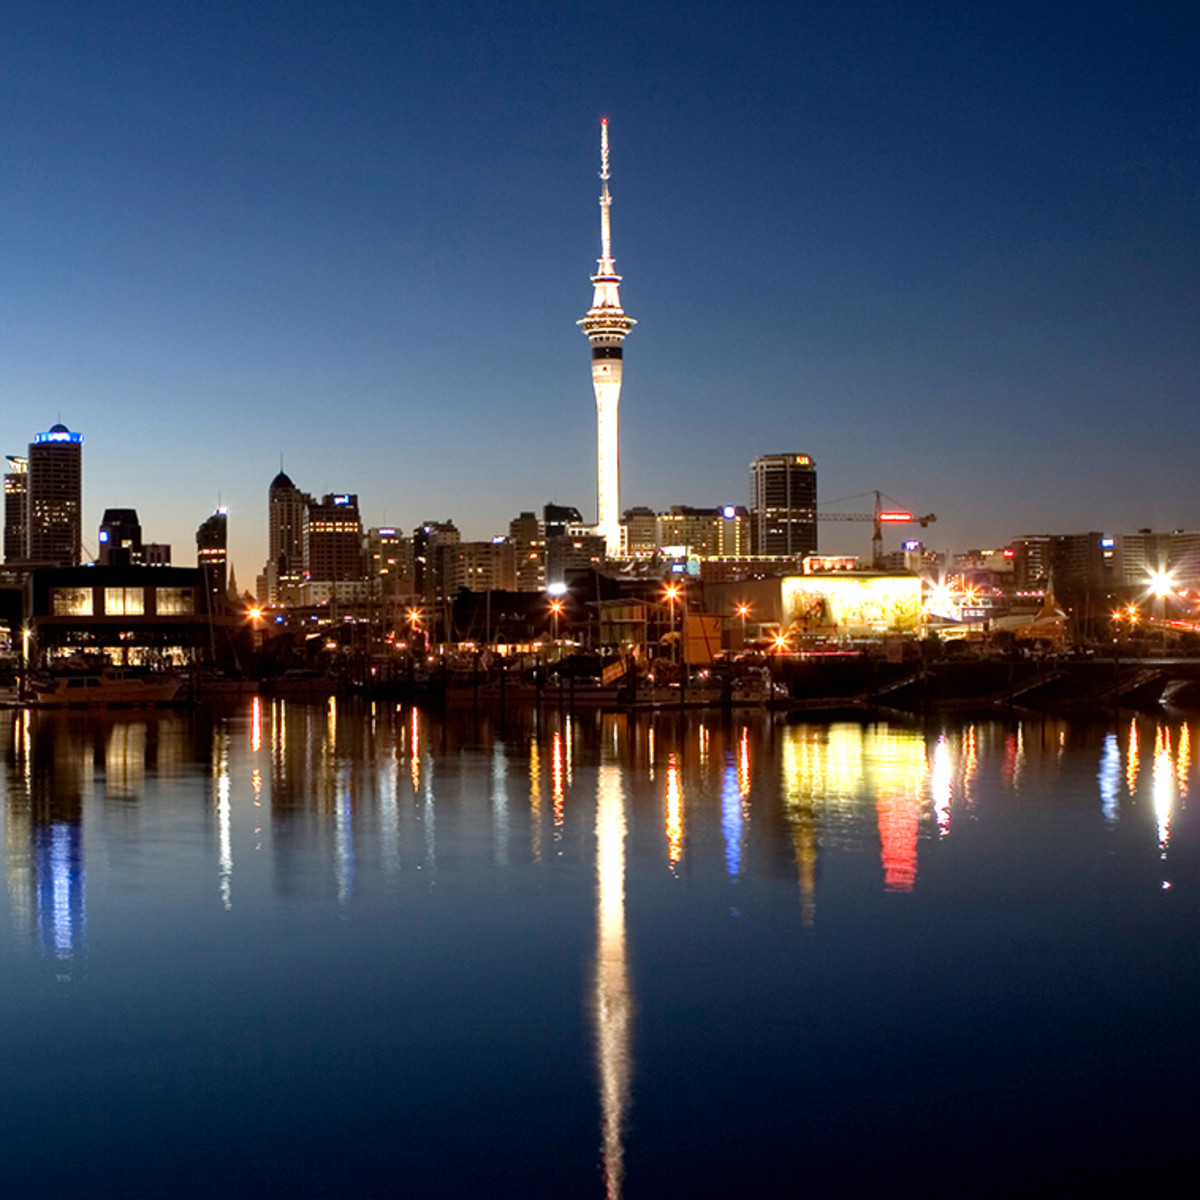 Auckland New Zealand at night